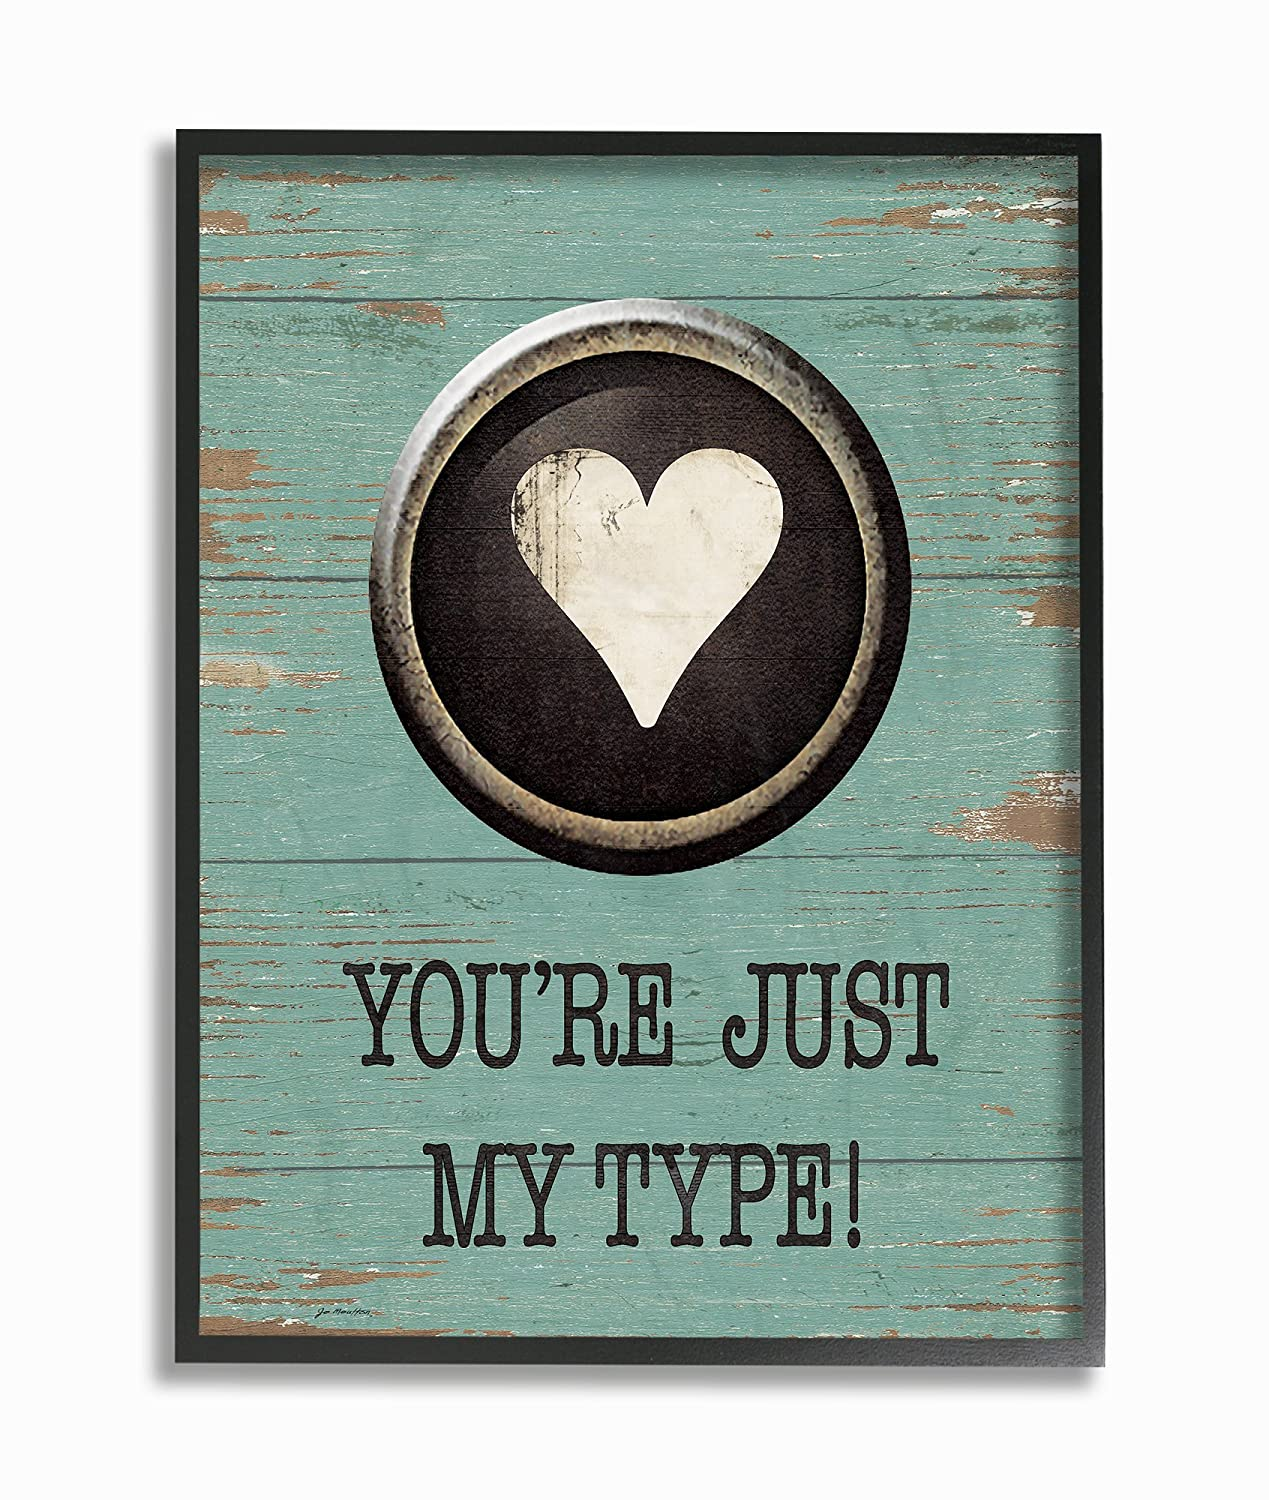 10 x 0.5 x 15 Proudly Made in USA Stupell Industries Just My Type Typewriter Key Heart Wall Plaque Art